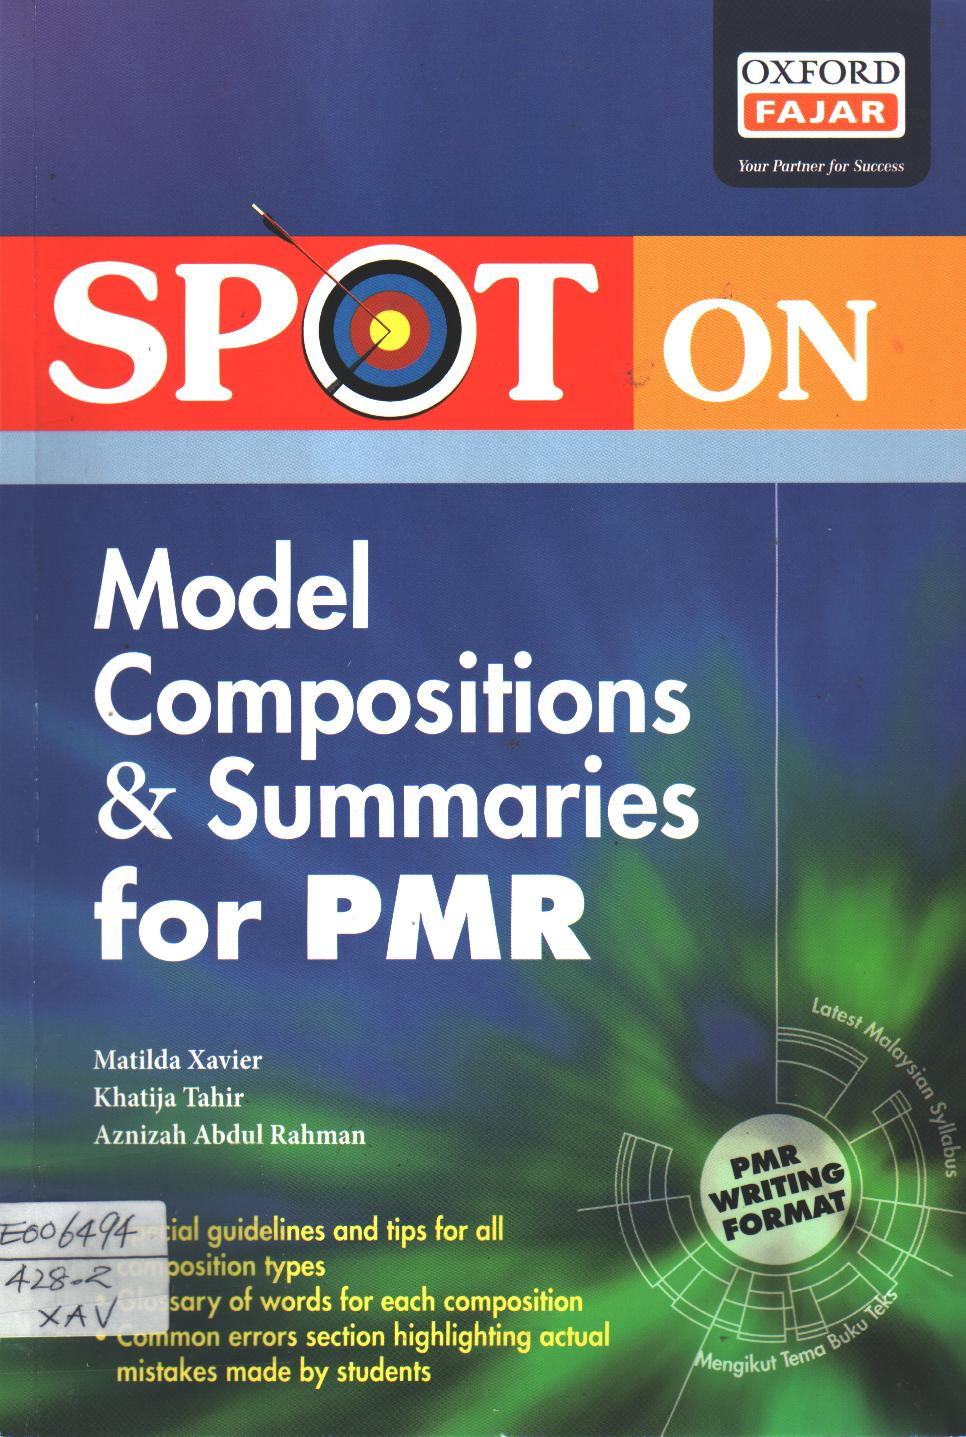 Spot on Model Compositions & Summaries for PMR